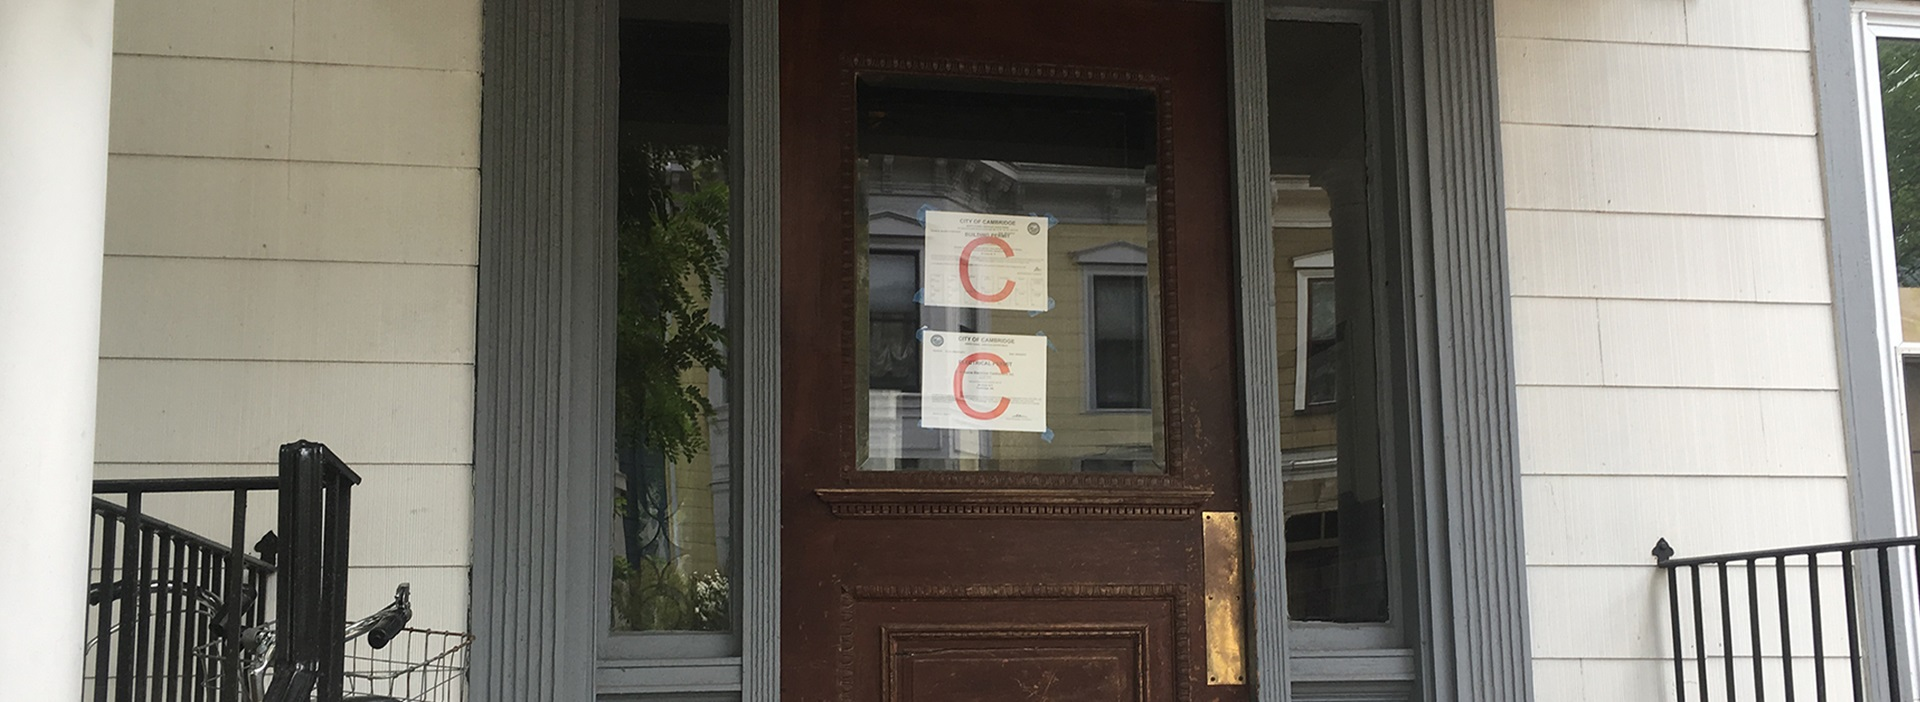 Building Permit on a door